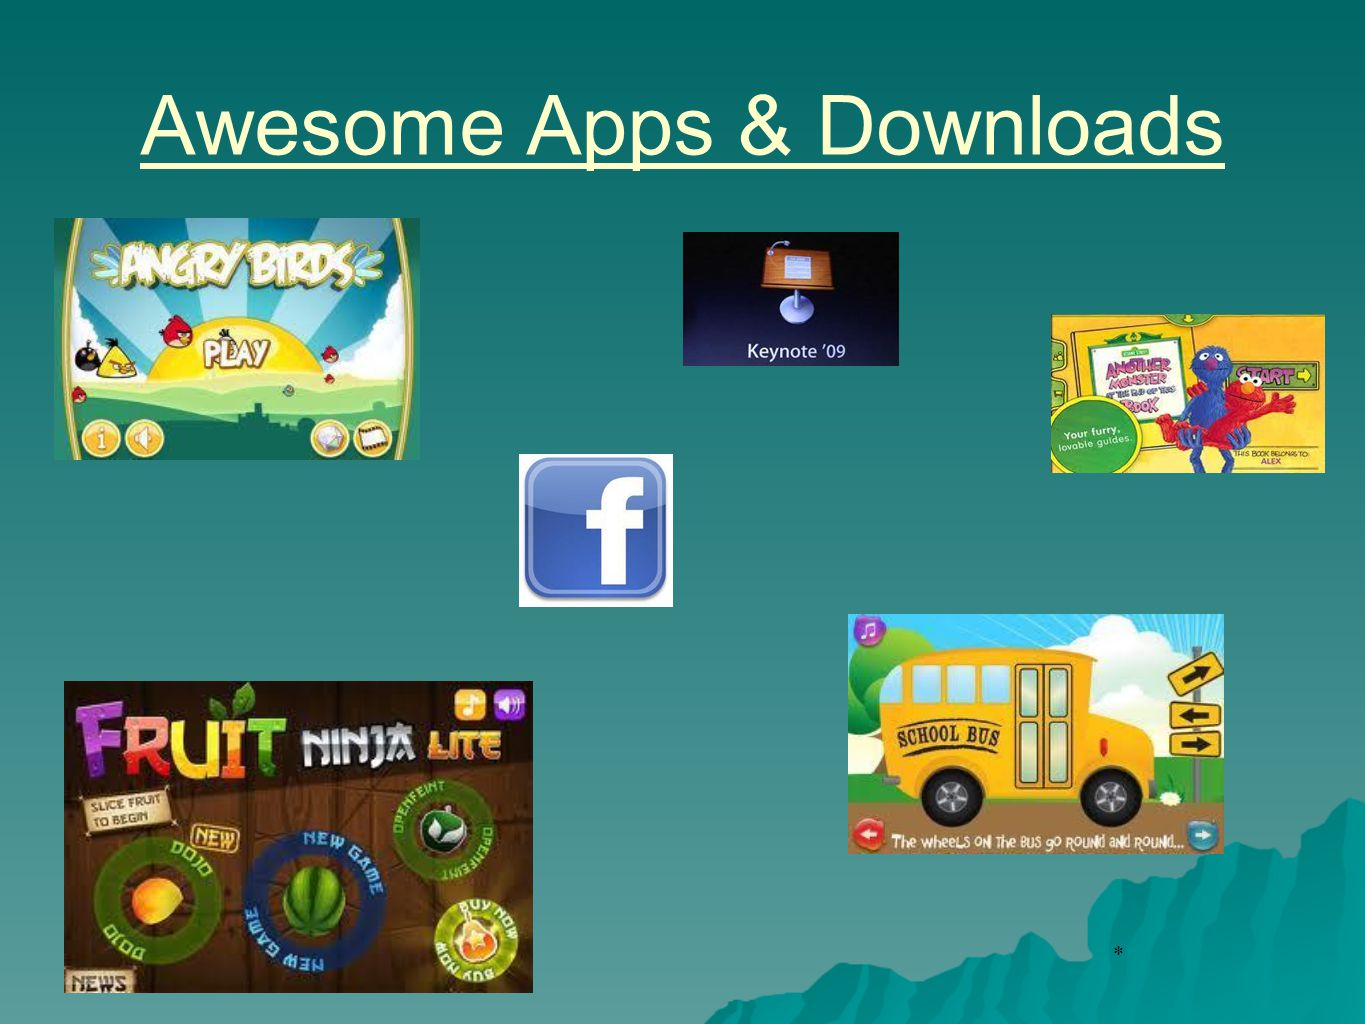 * Awesome Apps & Downloads